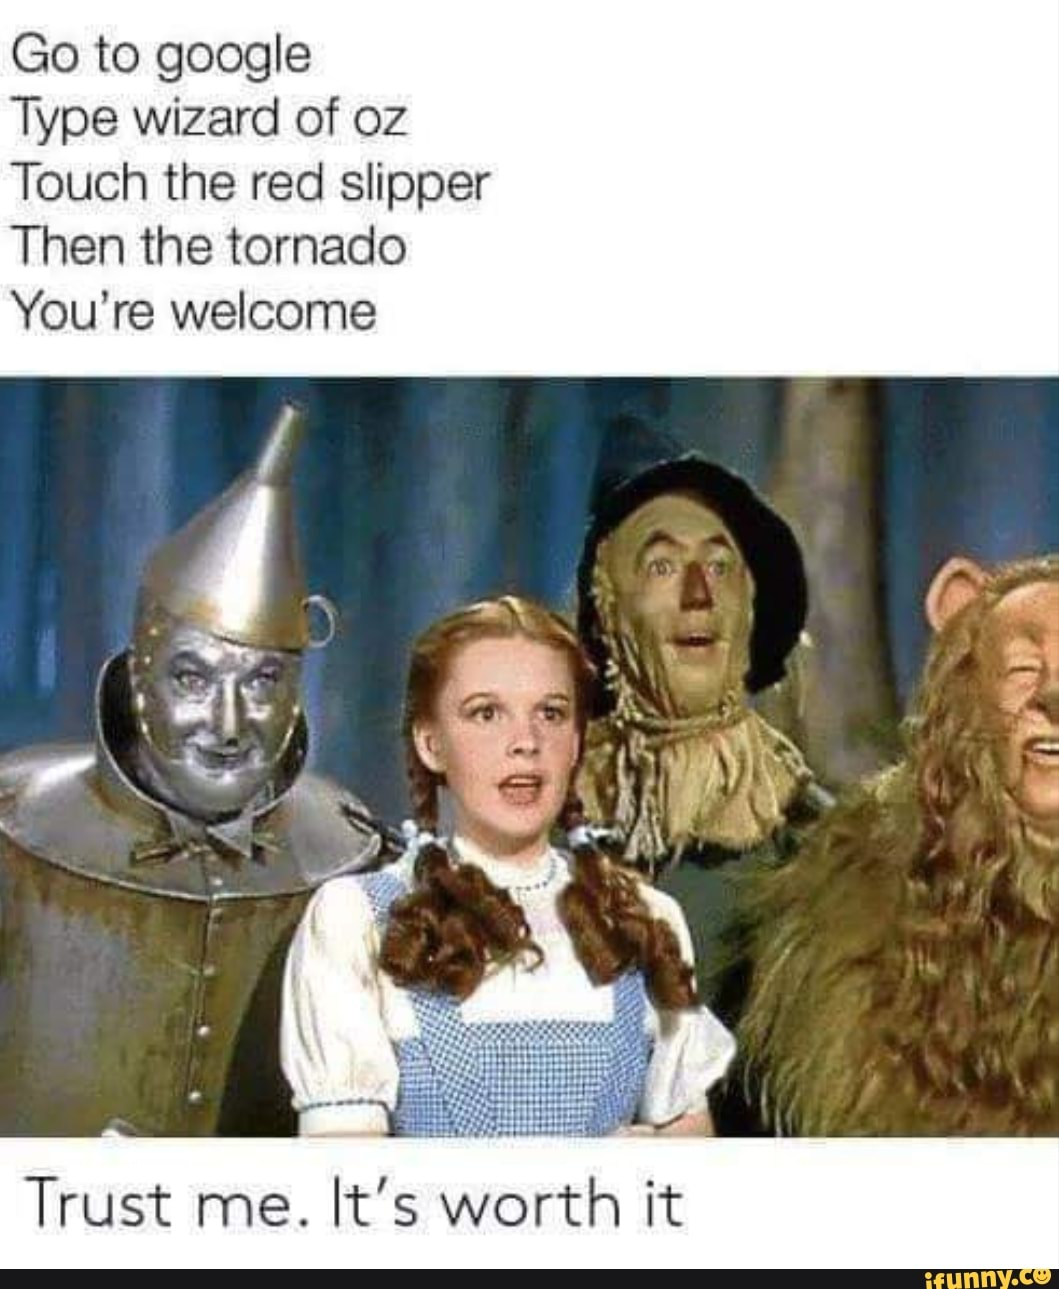 Wizard Of Oz Touch The Red Slipper Then The Tornado : wizard, touch, slipper, tornado, Google, Wizard, Touch, Slipper, Tornado, You're, Welcome, Trust, IFunny